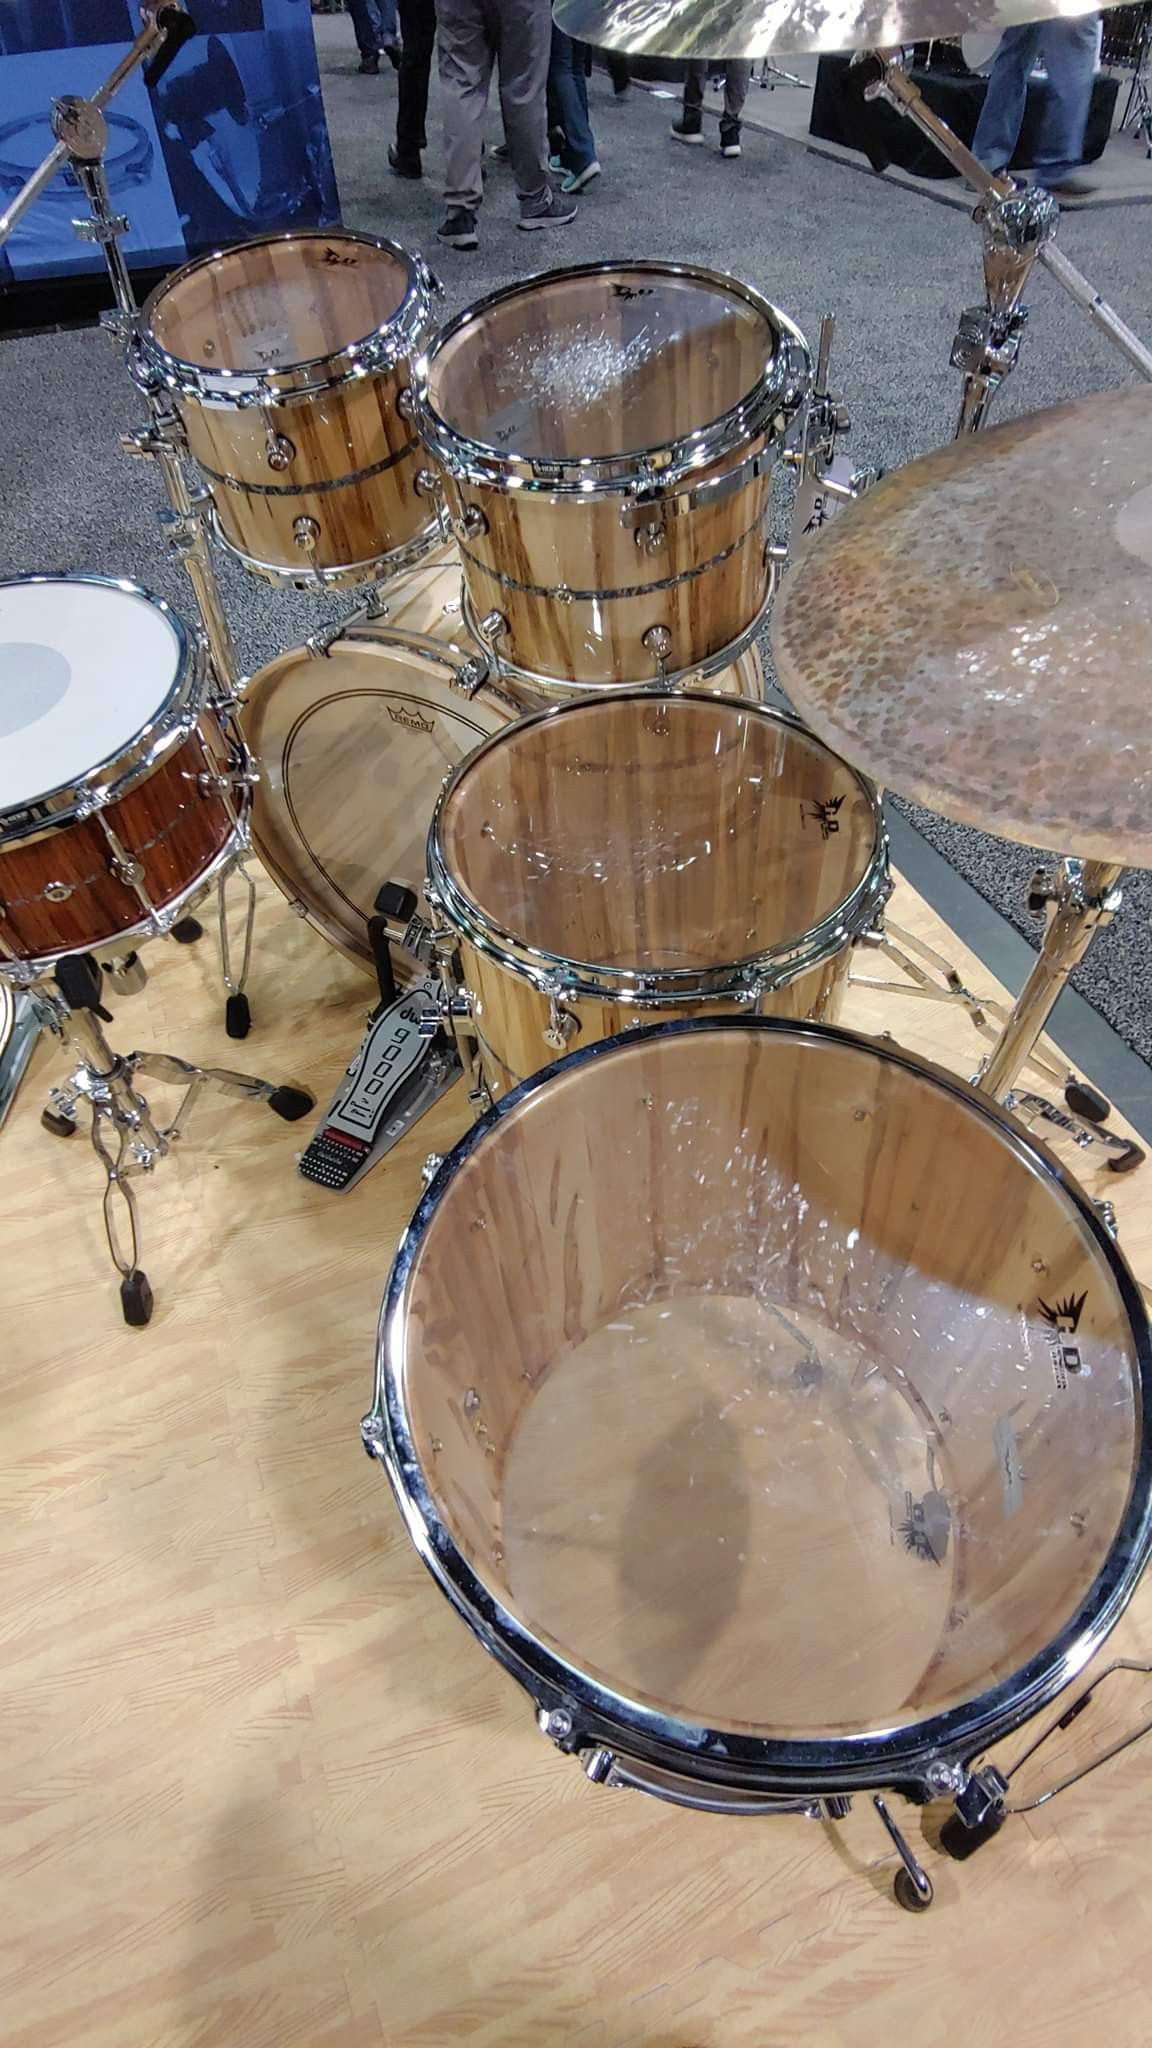 Pin By Sasa On Drums Percussion Instruments Percussion Drum Kits